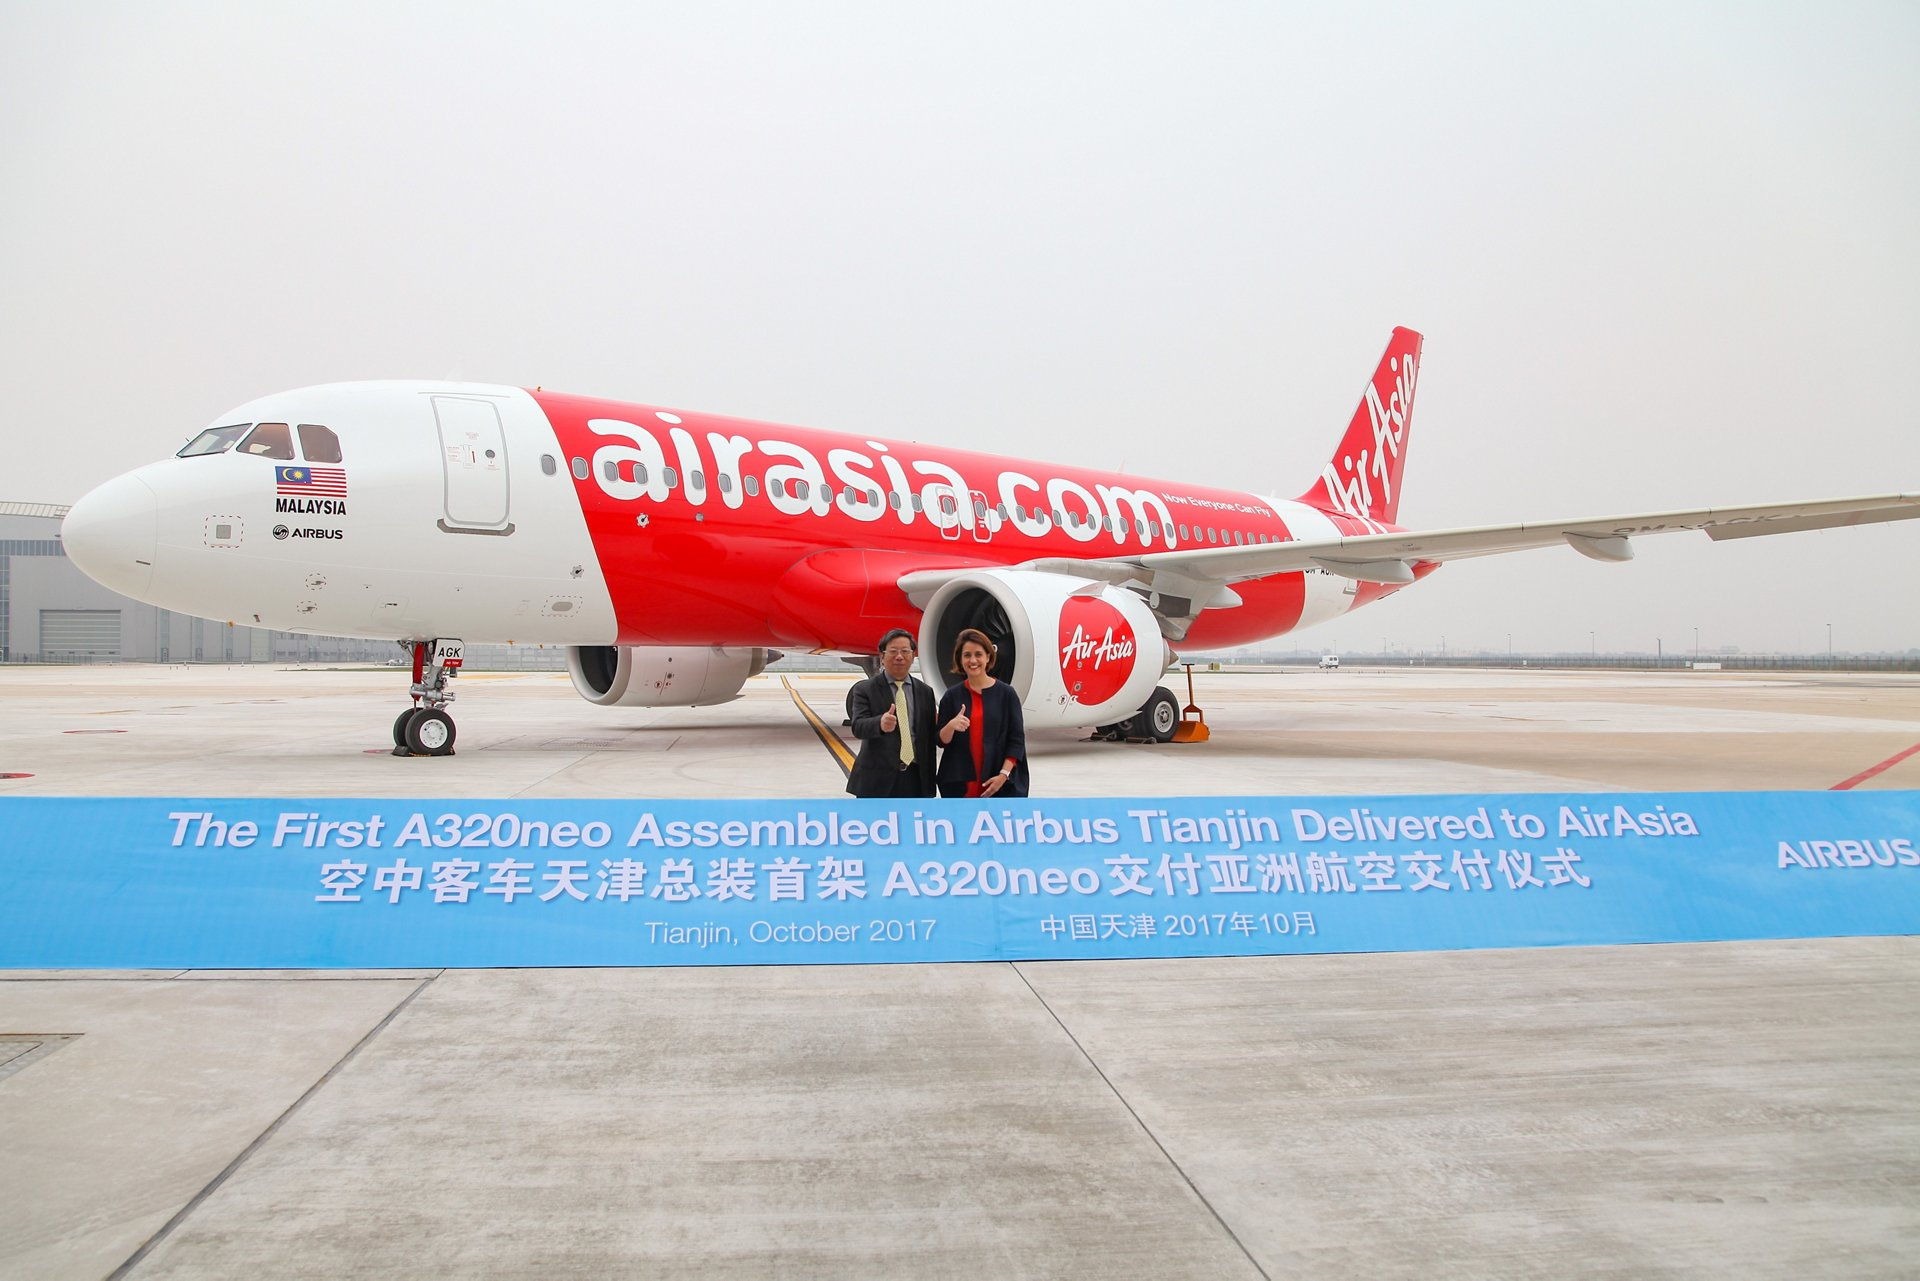 AirAsia has taken delivery of the first A320neo assembled at the Airbus Final Assembly Line Asia (FALA) at a dedicated ceremony in Tianjin, China.